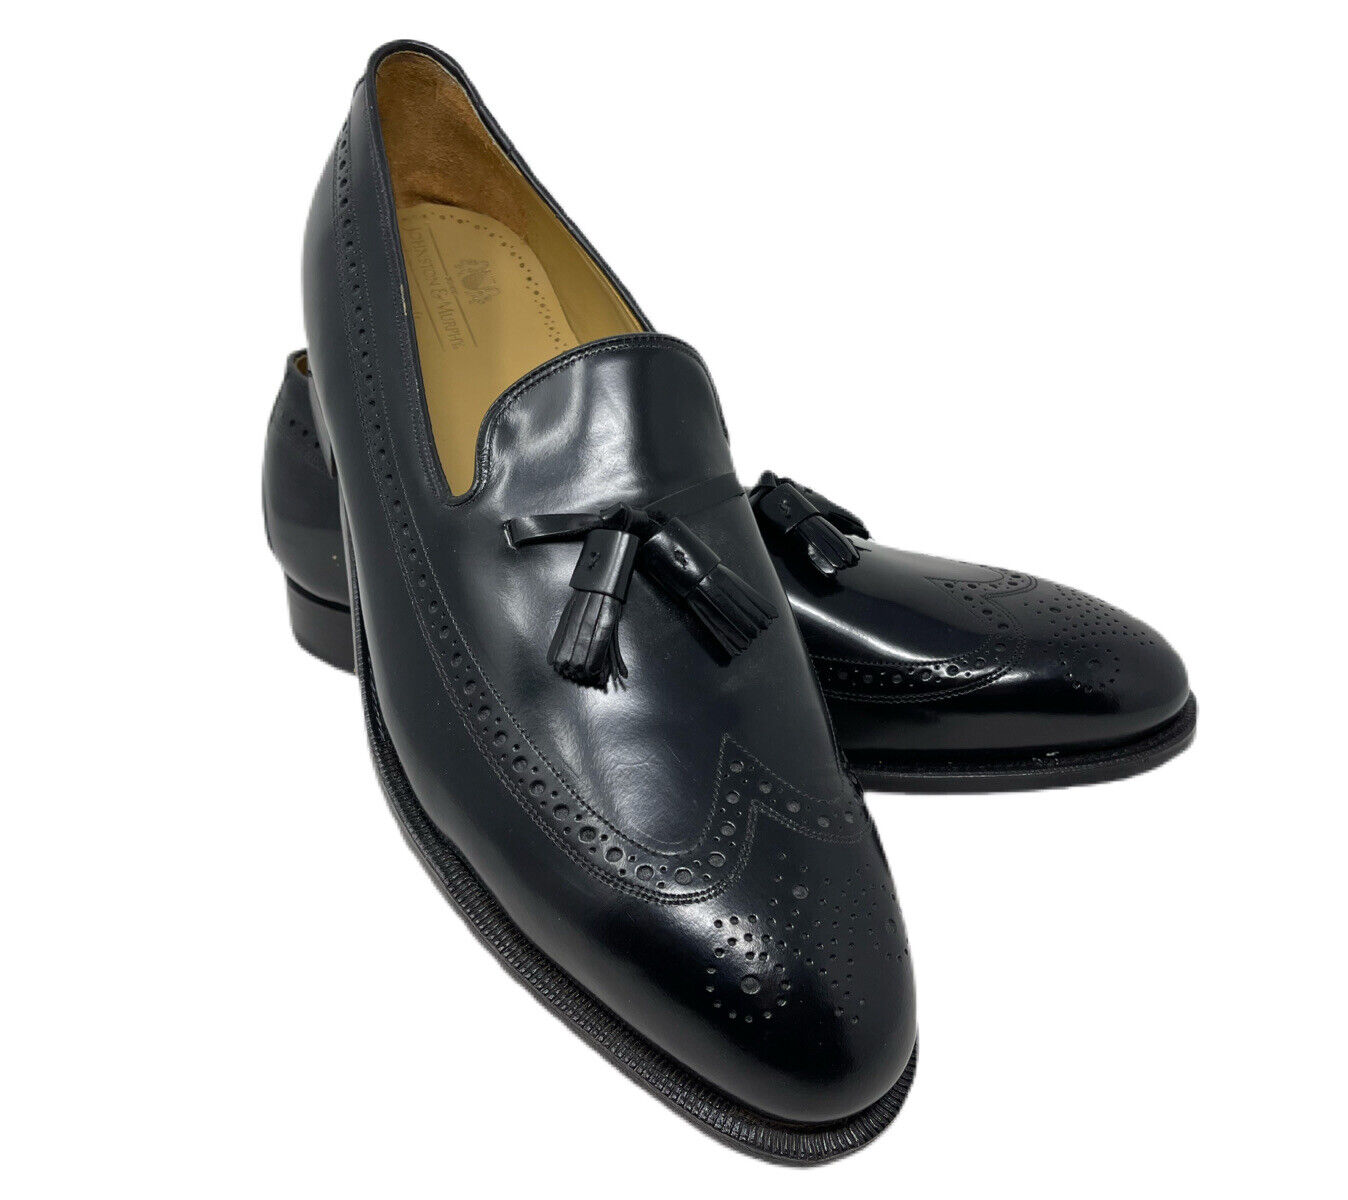 New Johnston & Murphy Aristocraft Mens Black Leather Tassel Loafers Shoes 14 D